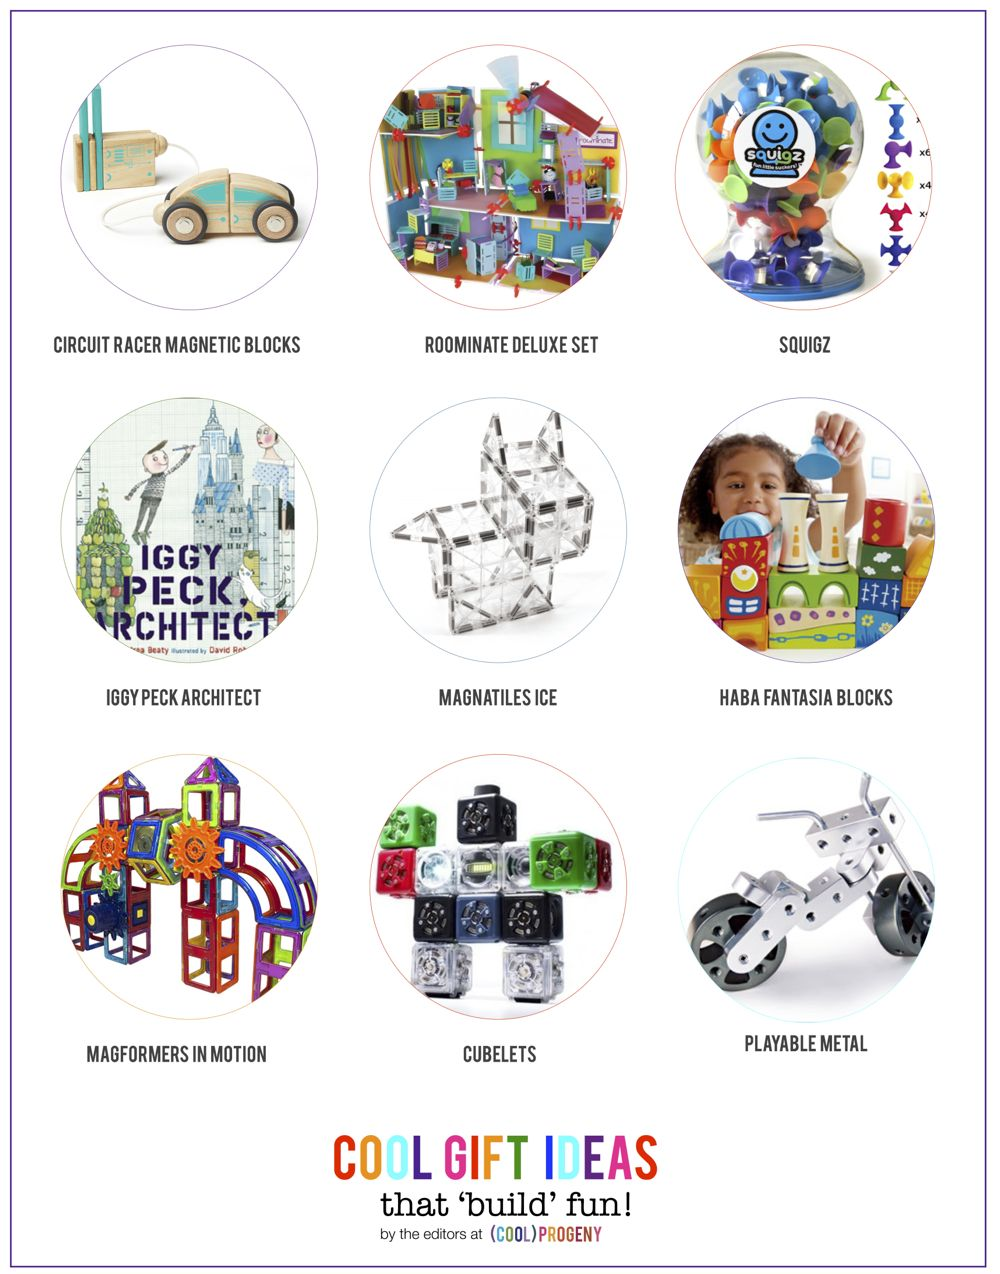 2014 Baltimore Holiday Gift Guide: Gifts for Aspiring Architects  - (cool) progeny